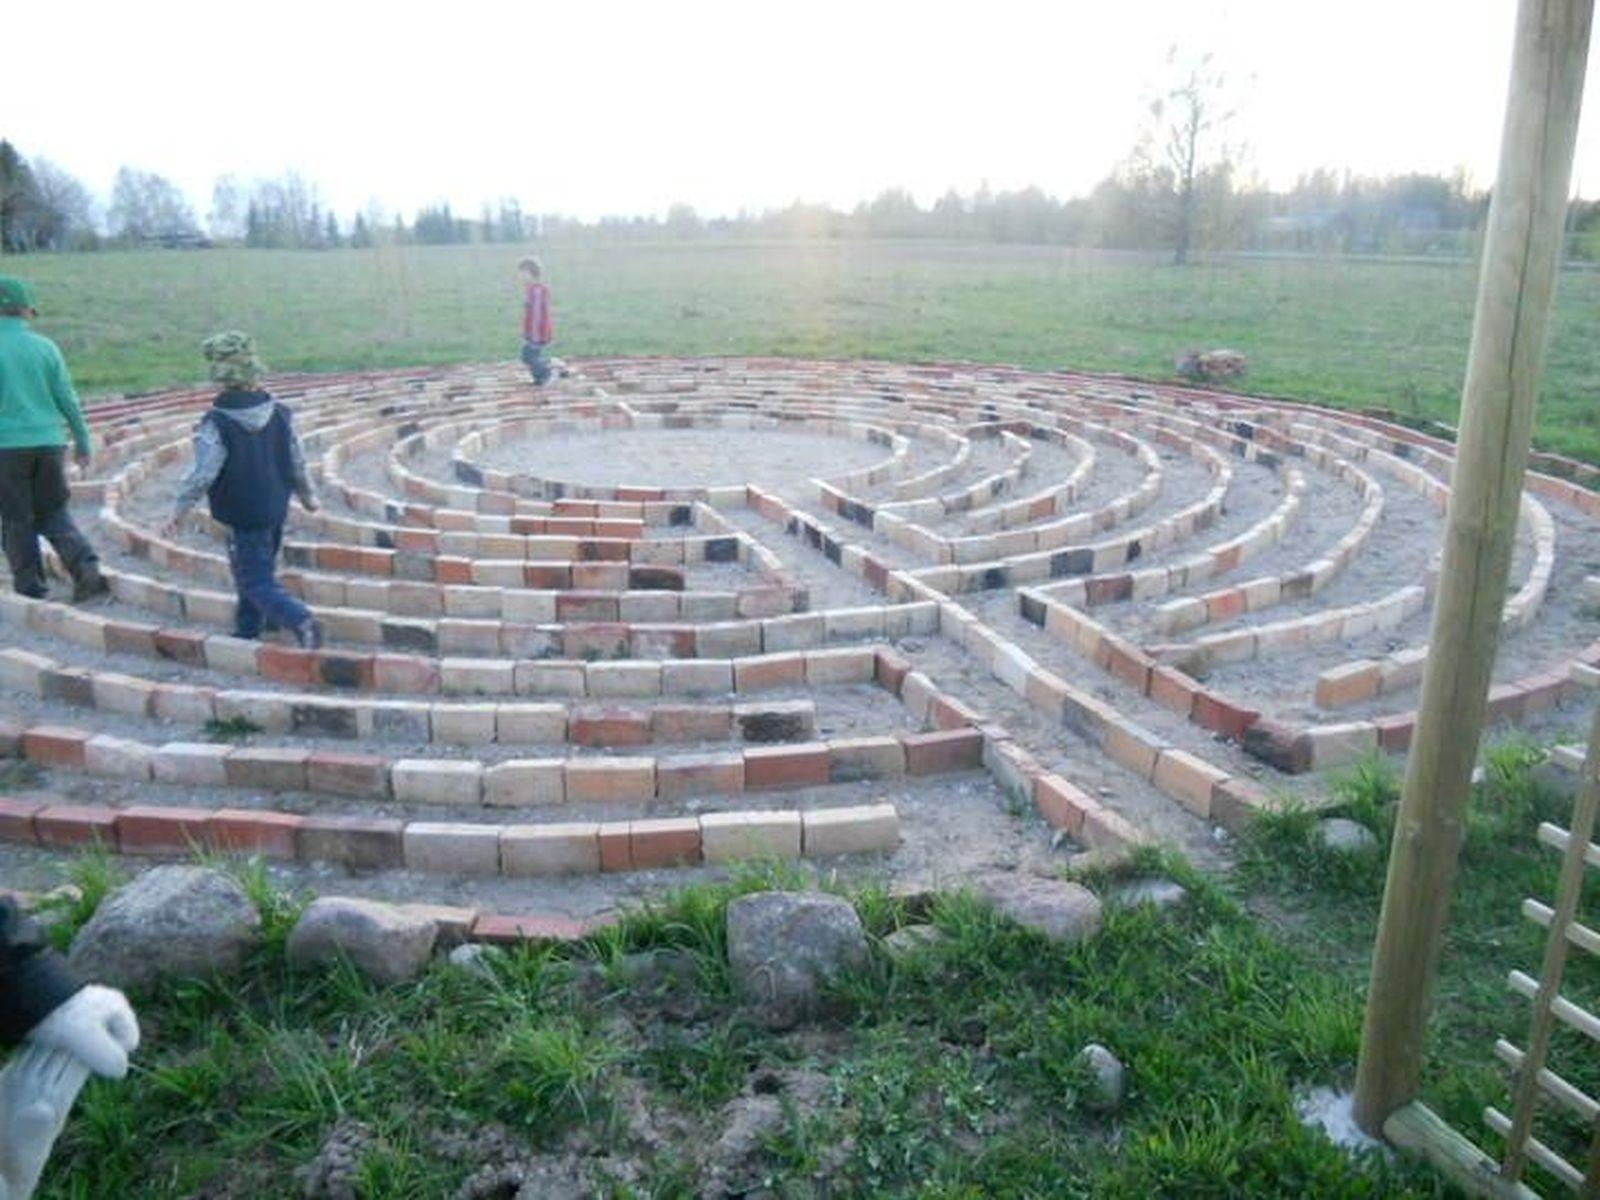 The brick laid labyrinth of Jaii Farm in Estonia